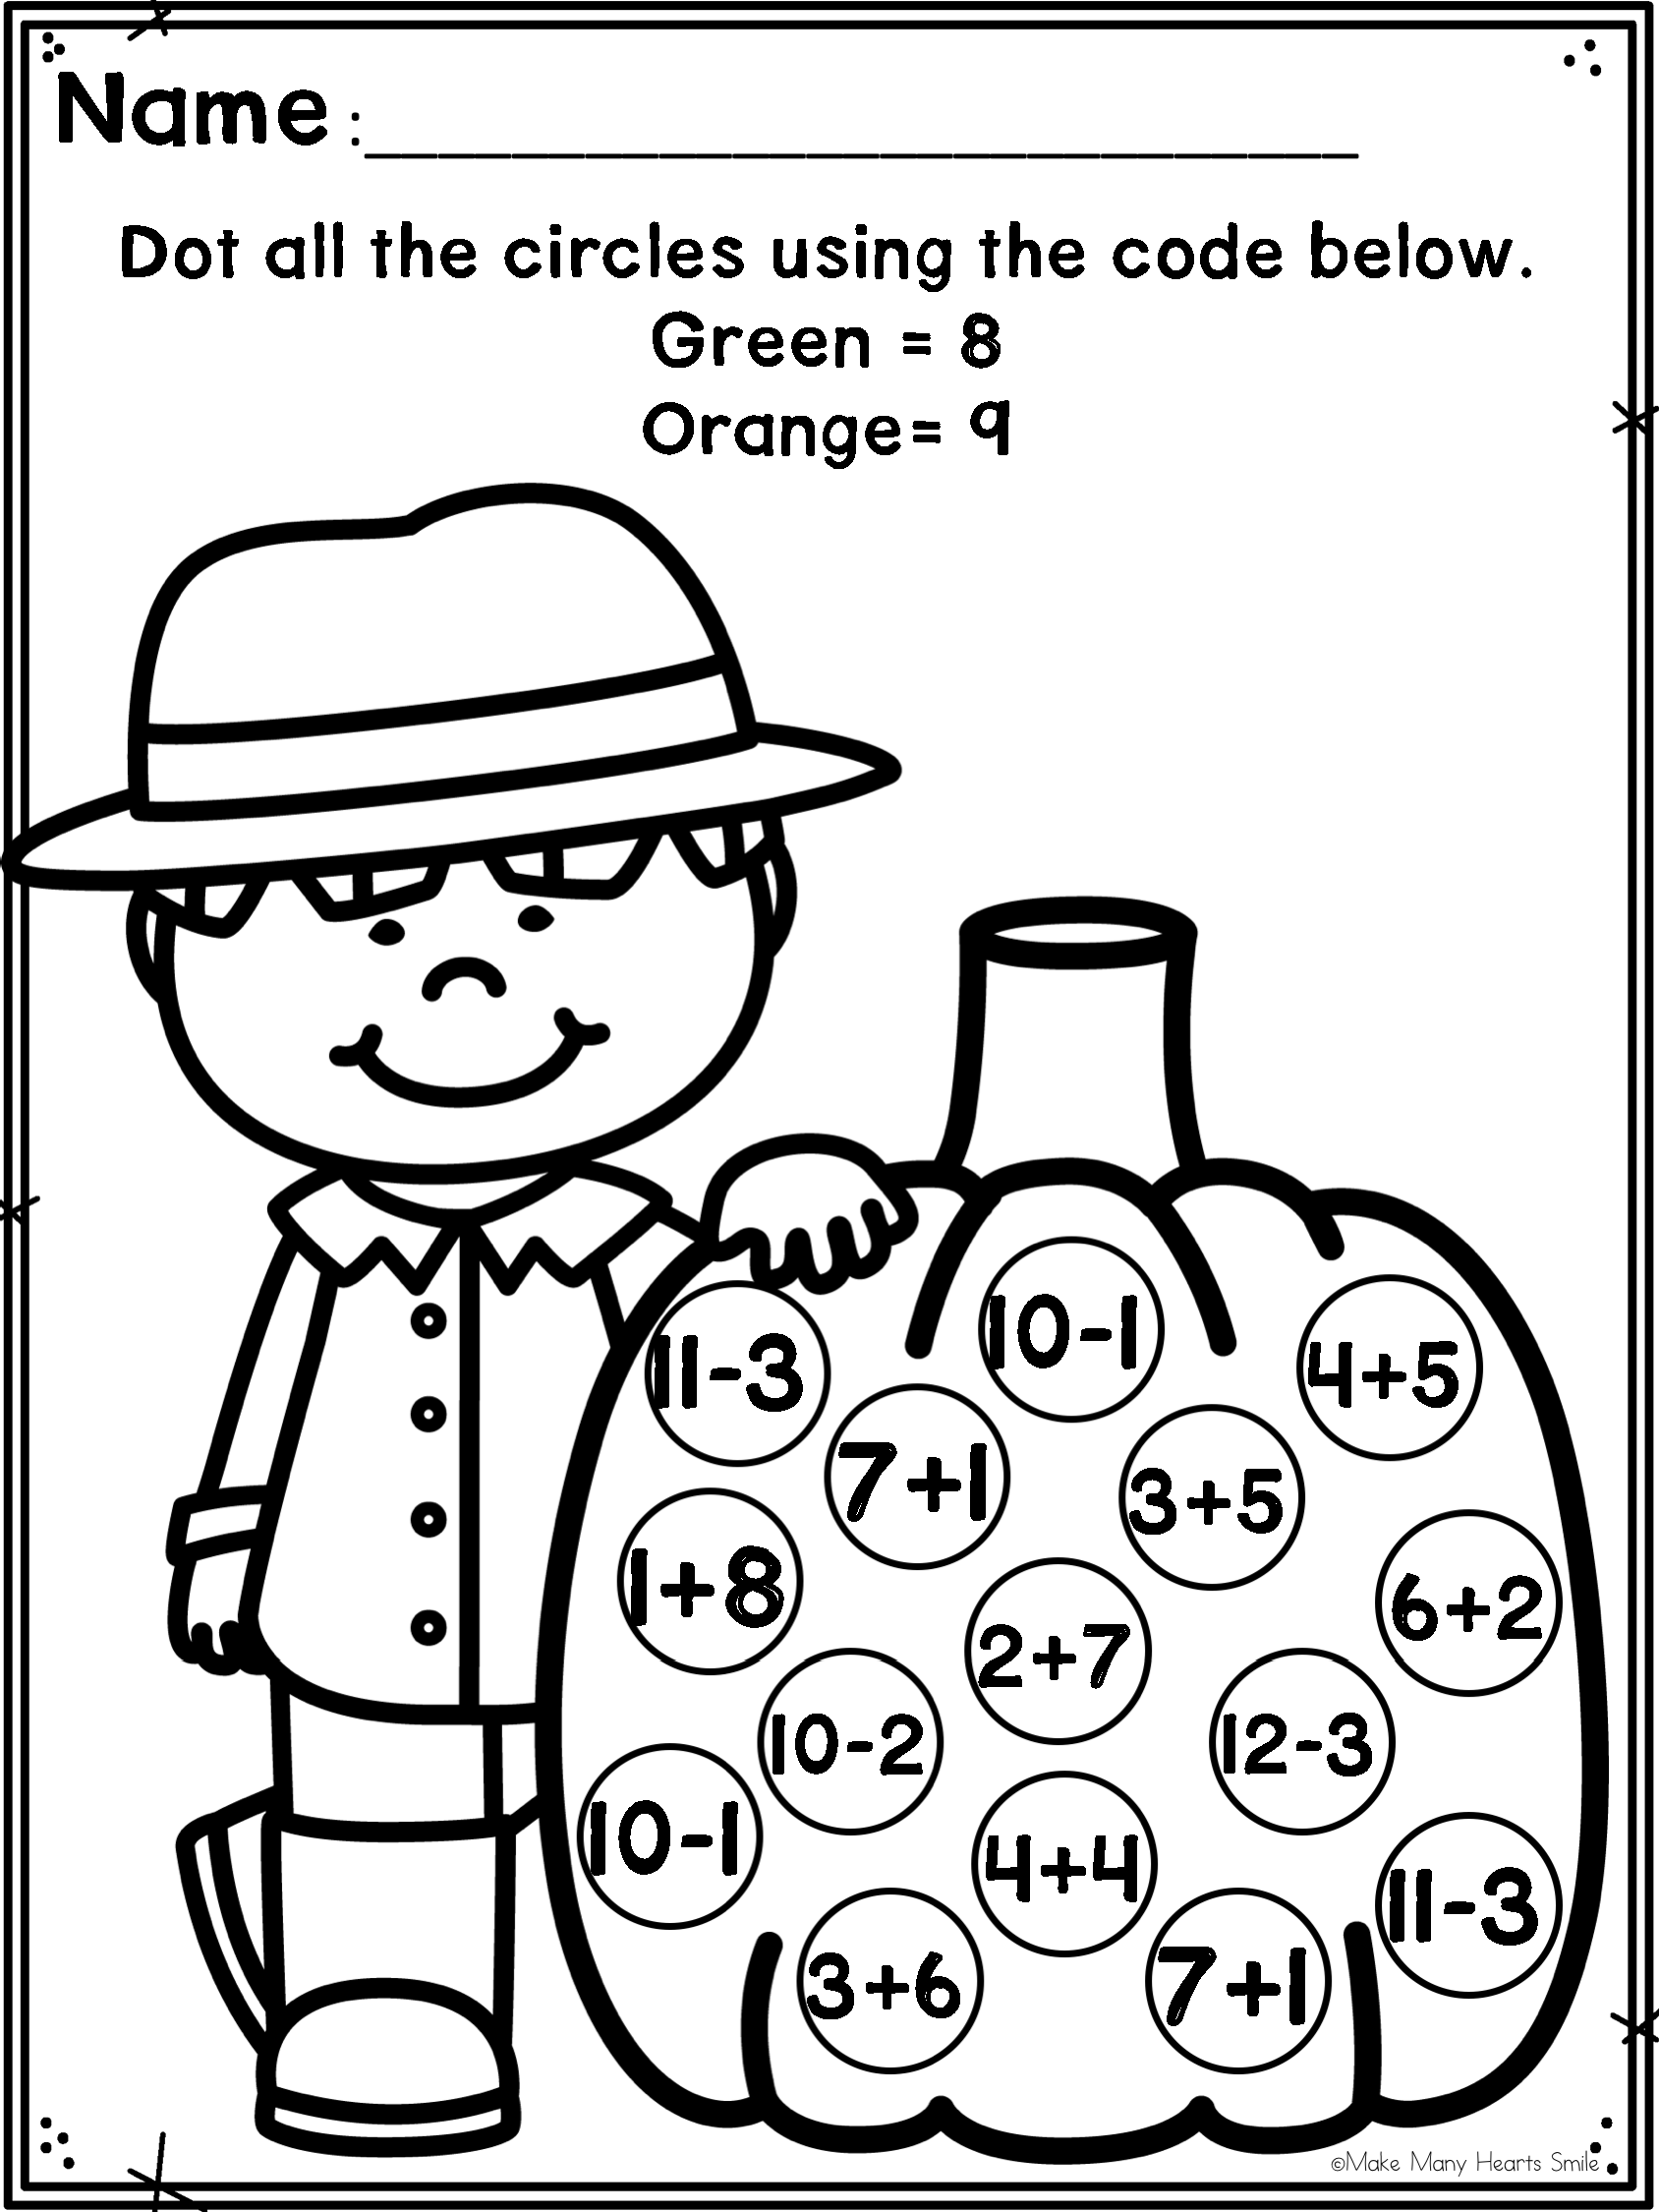 Edit And Customize The Worksheets To Suit Your Kiddos And